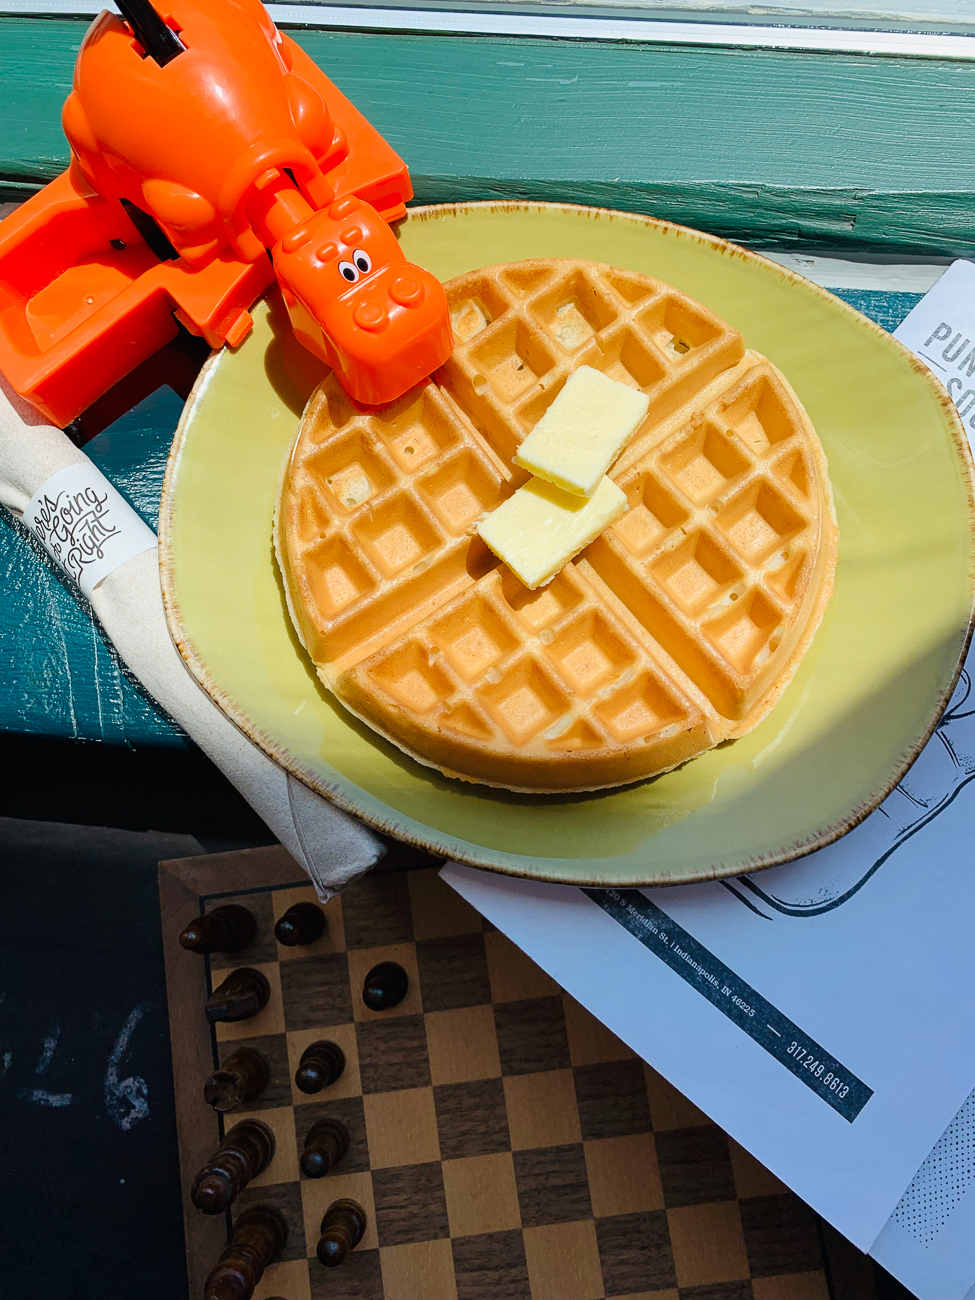 Not everything has to be complicated. Punch Bowl Social is doing Eleven's Waffles—served with butter and maple syrup. Honestly, if you don't start your days in Indy ravenously consuming season 3 without waffles, can you even call yourself a fan? They're available July 1 through 7. ADDRESS: 120 S Meridian St, Indianapolis, IN 46225 / Image courtesy of Visit Indy // Published: 6.26.19